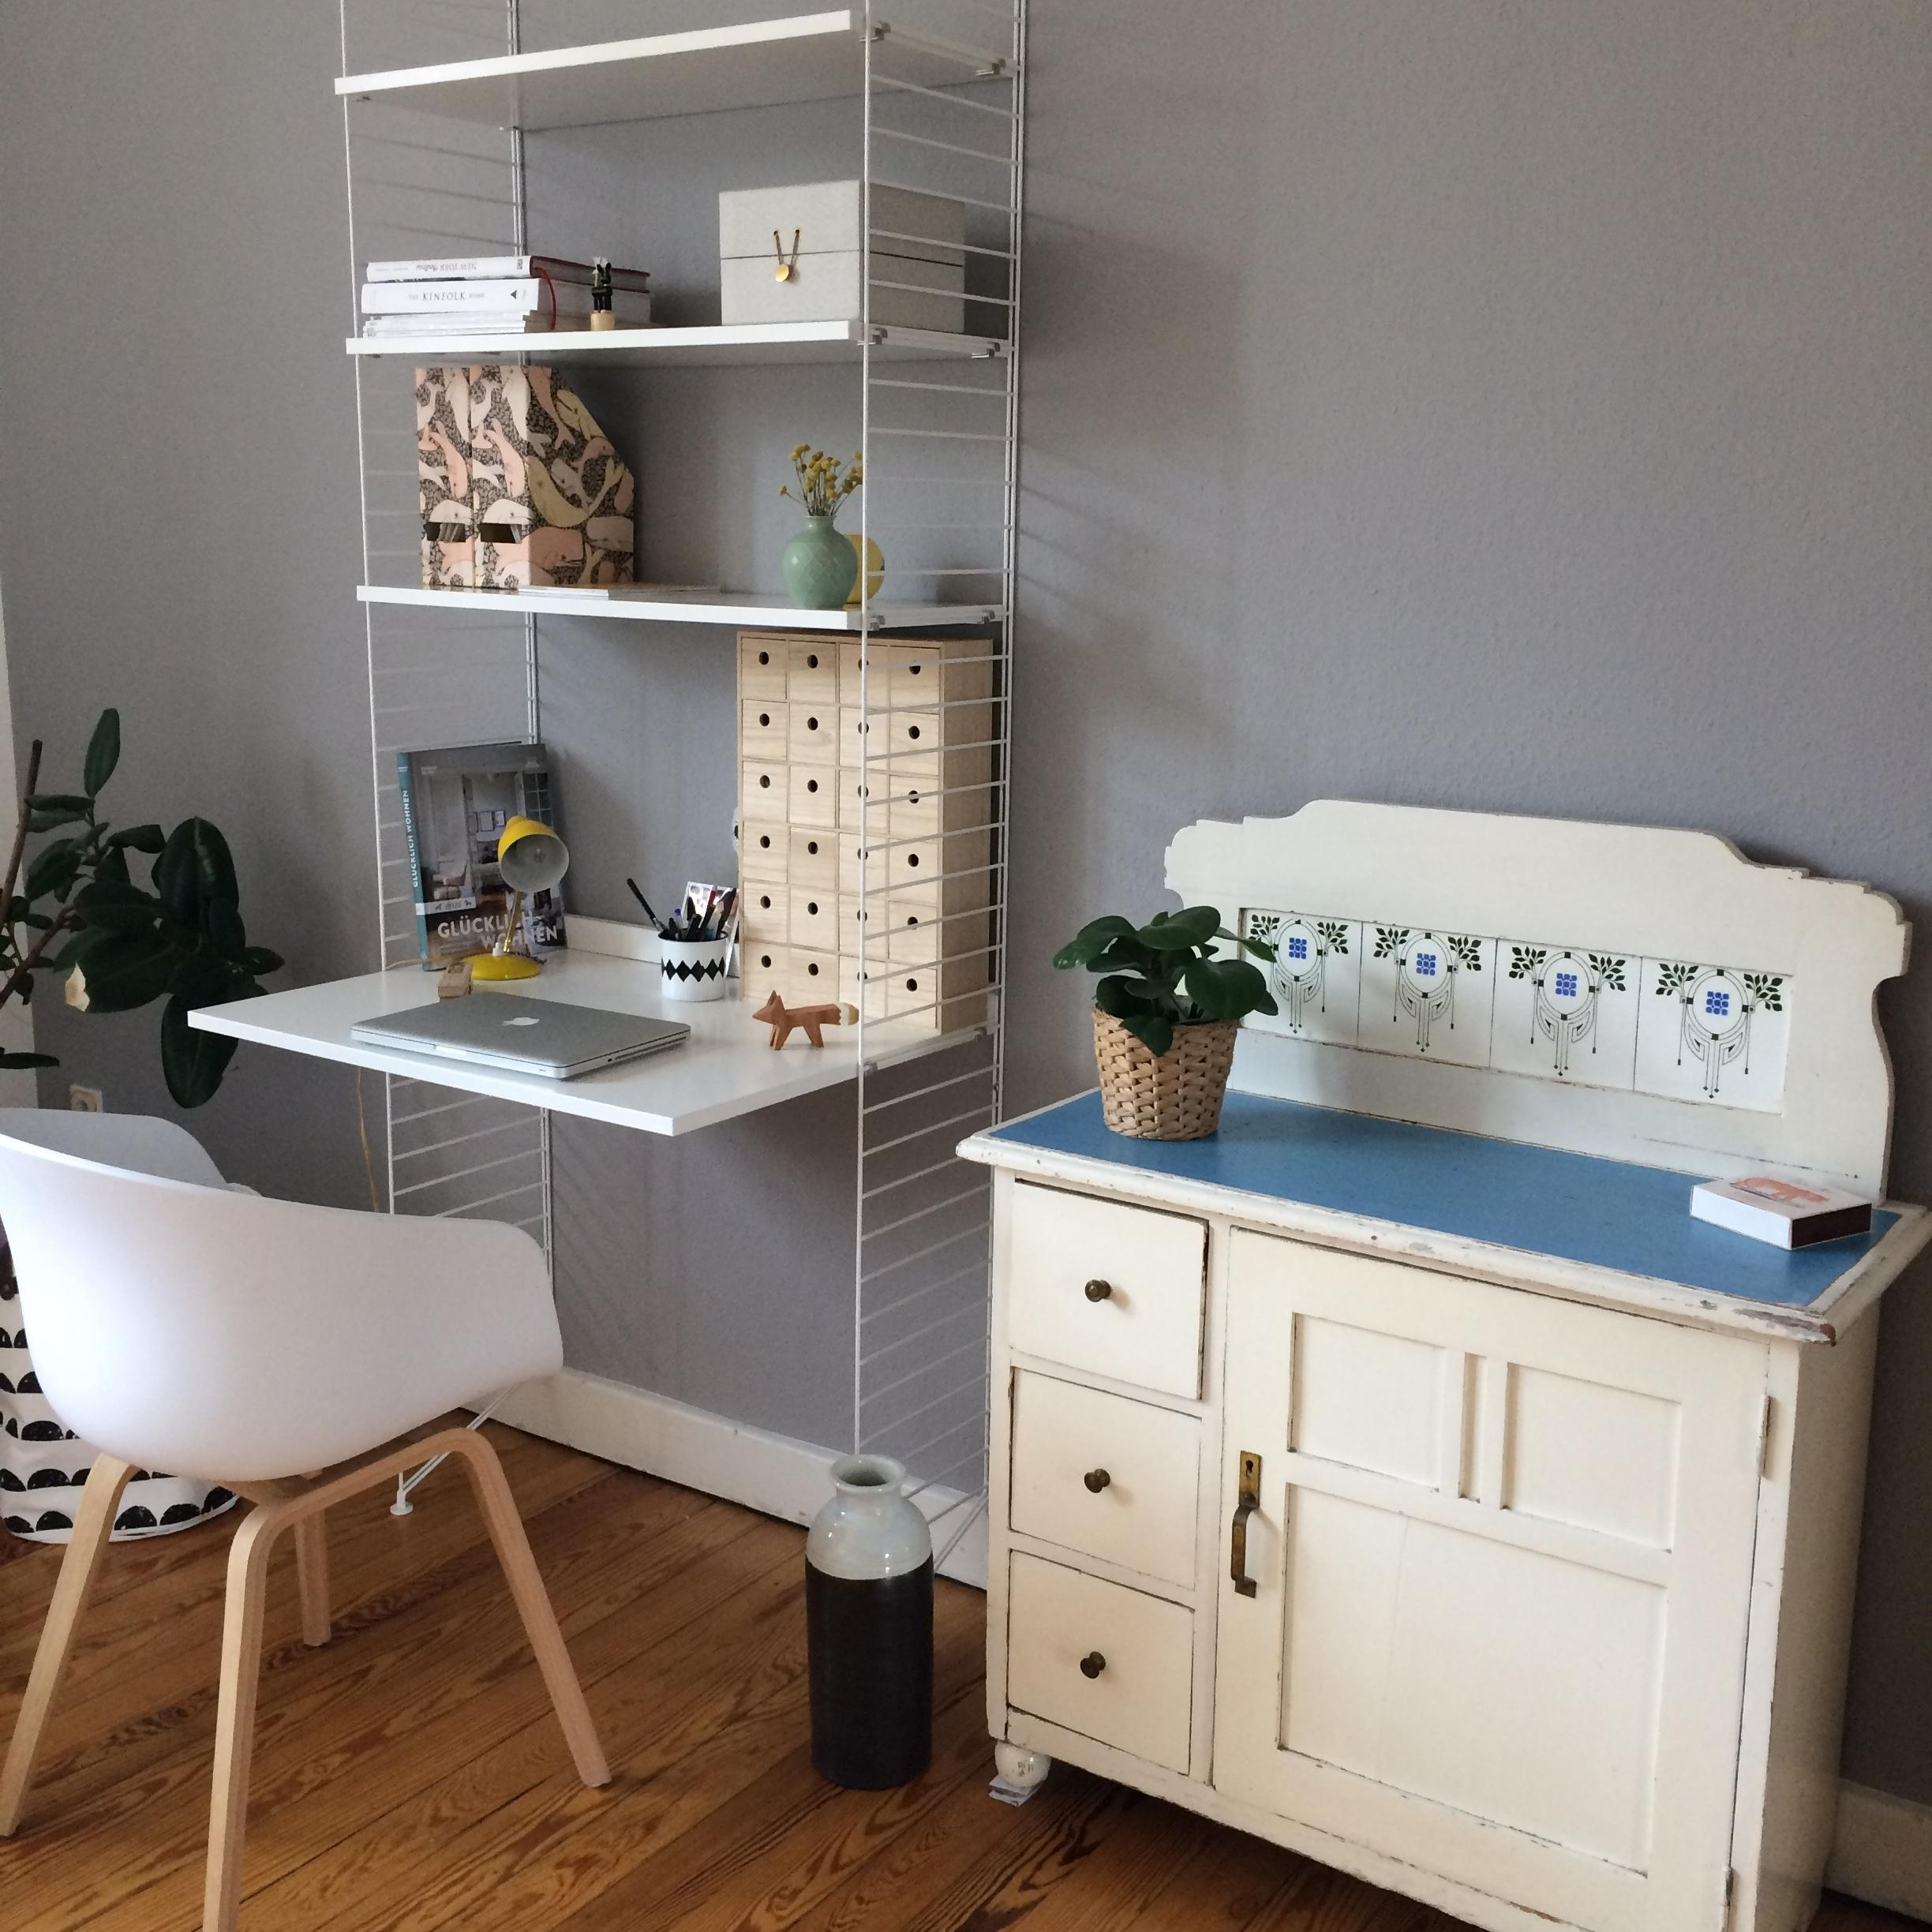 Aufgeräumter #Arbeitsplatz. #interior #living #scandystyle #altundneu  #mixandmatch #workspace